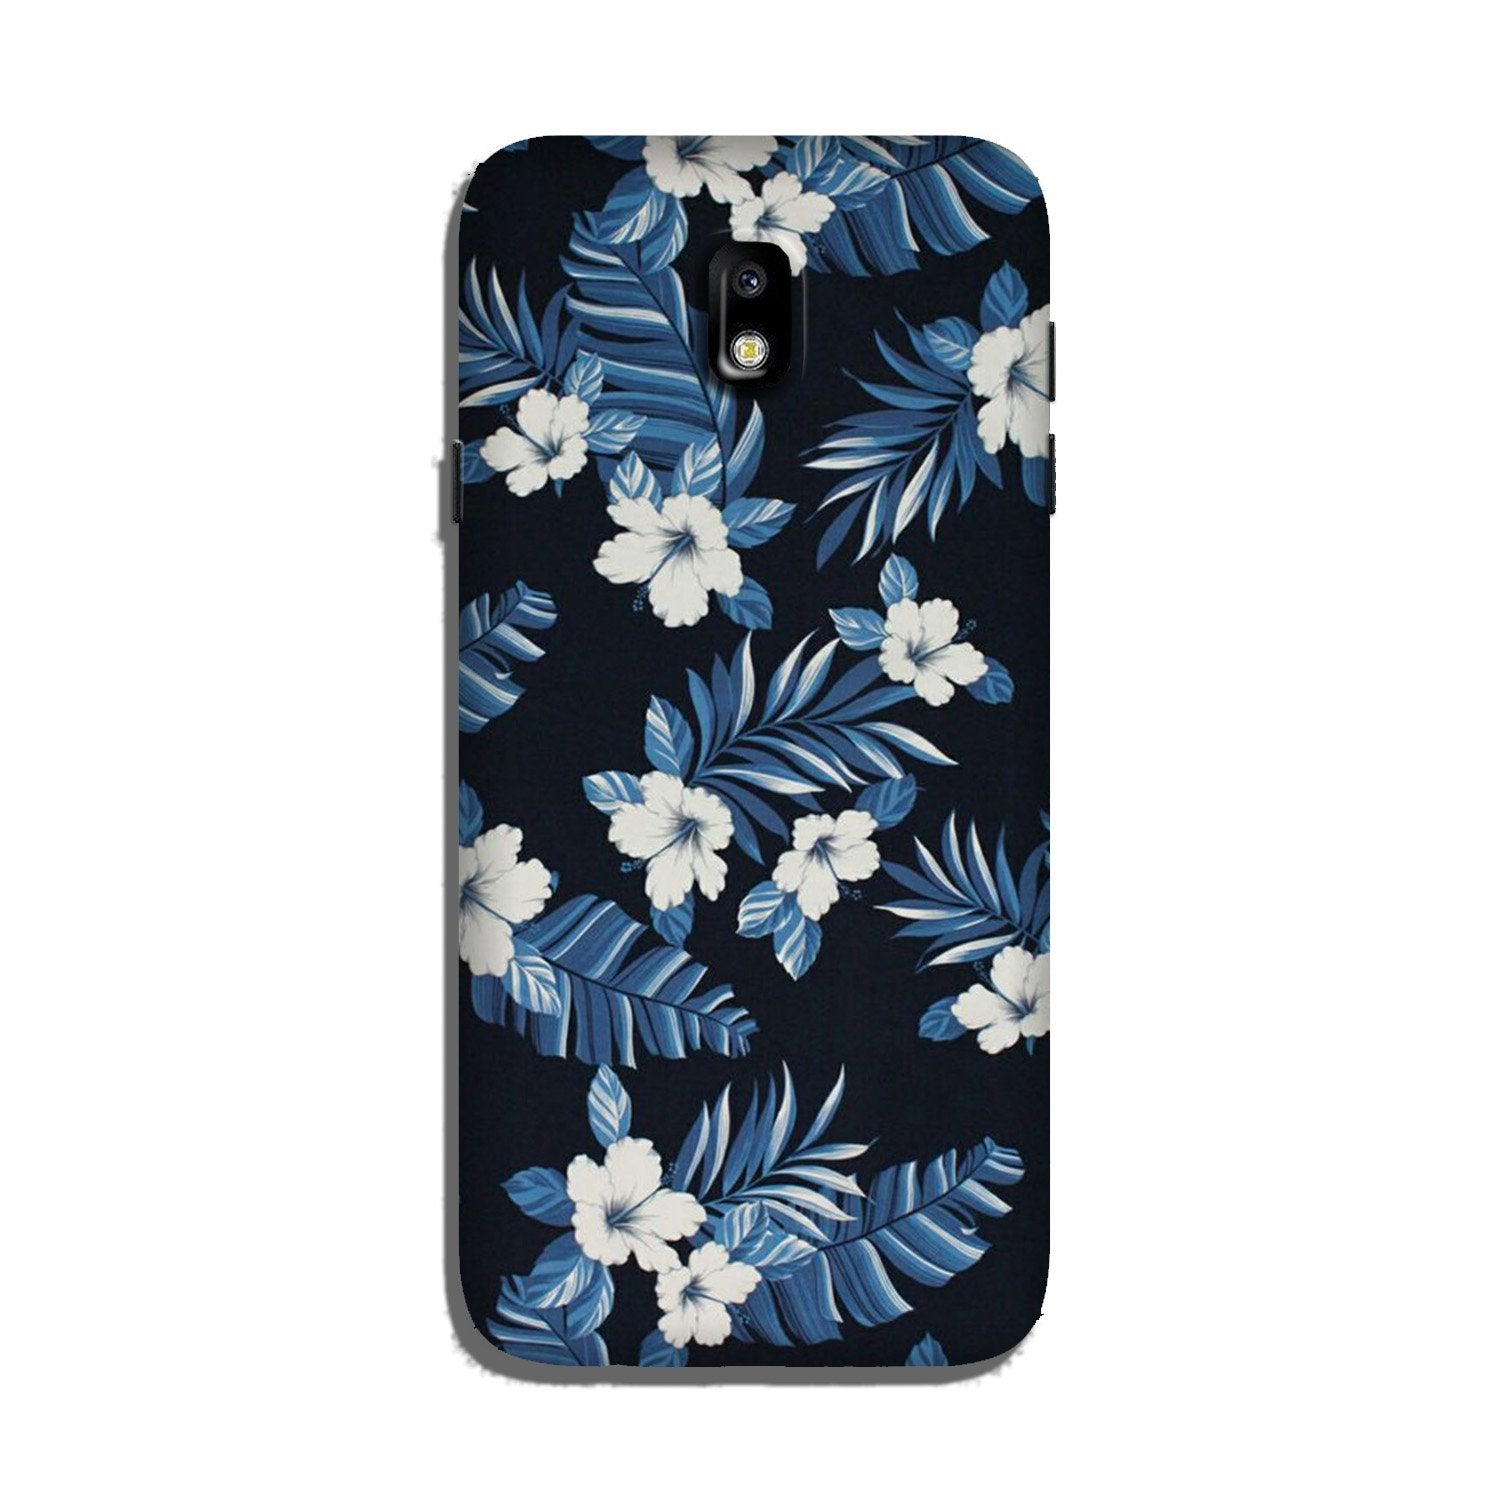 White flowers Blue Background2 Case for Galaxy J3 Pro